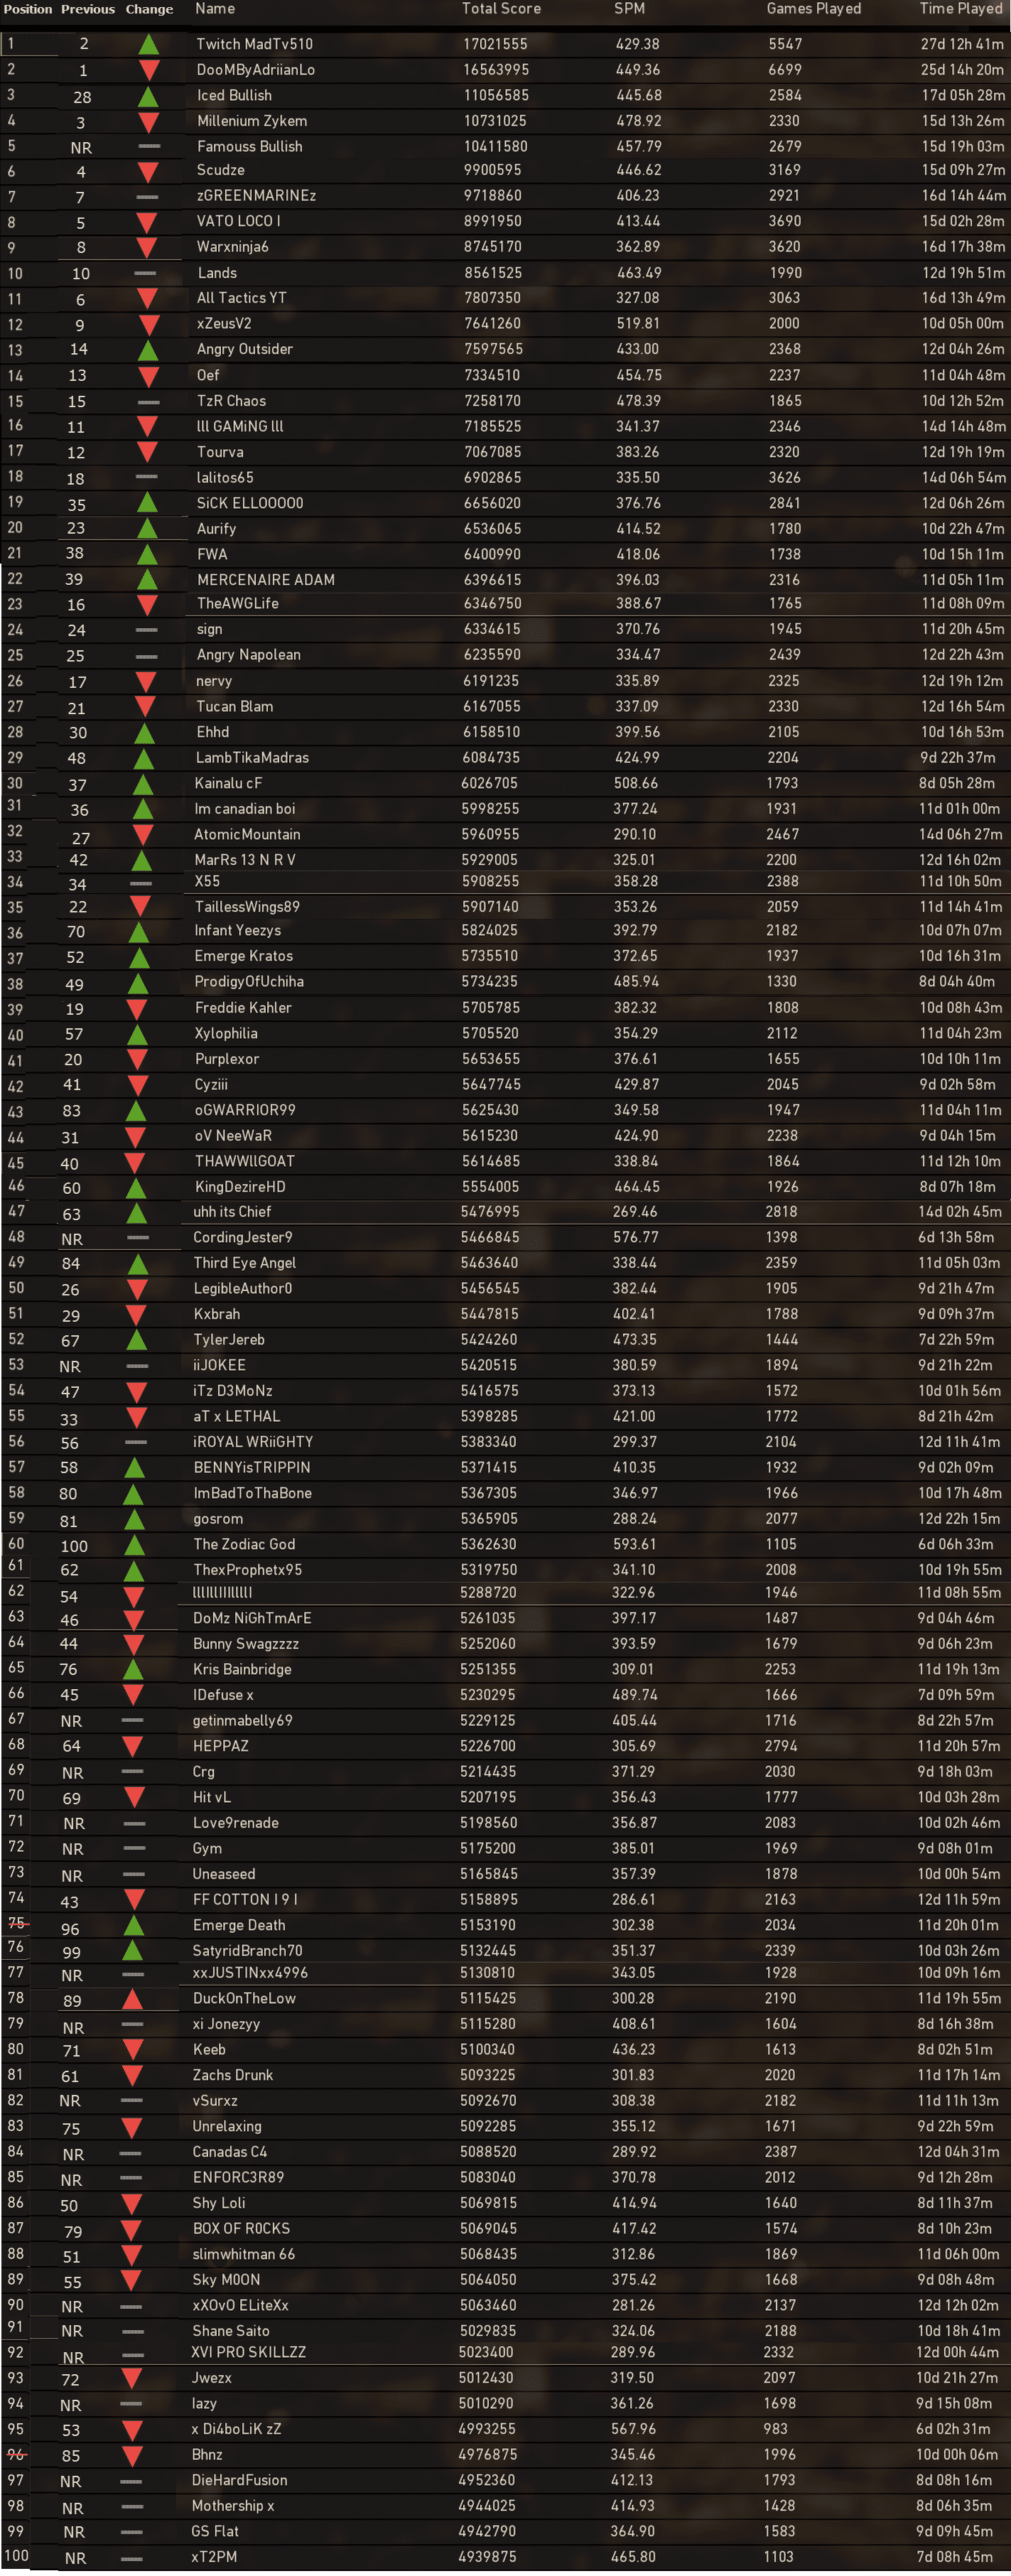 Call-of-Duty-WWII-Leaderboards-XBOX-Dec17-2017